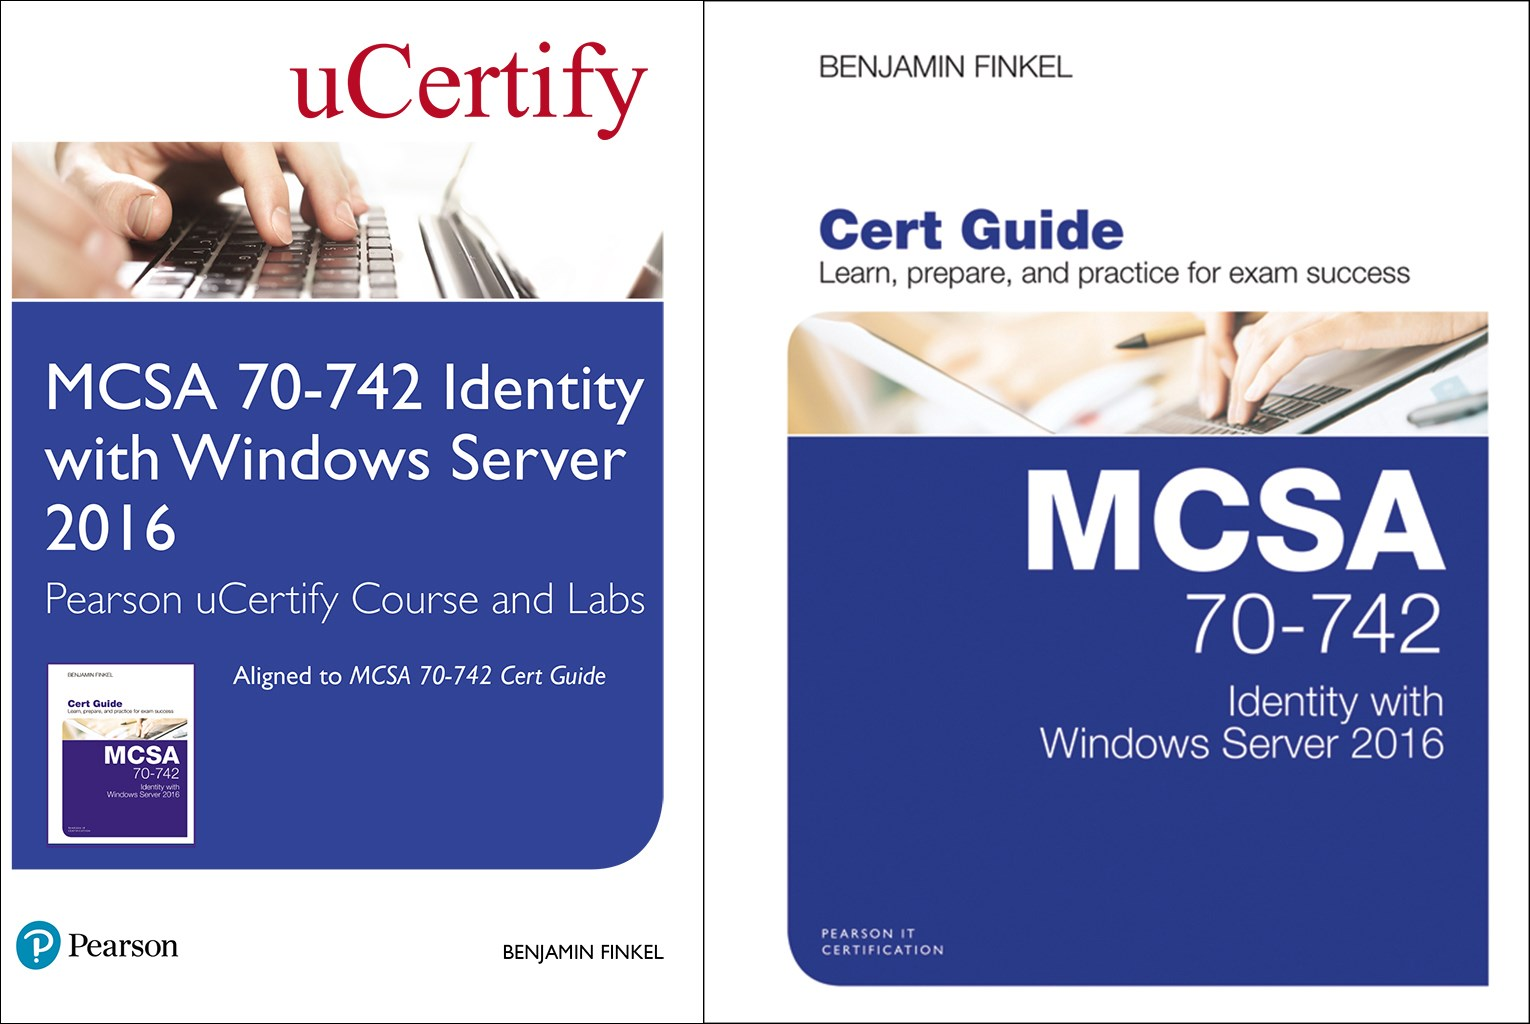 MCSA 70-742 Pearson uCertify Course and Labs and Textbook Bundle